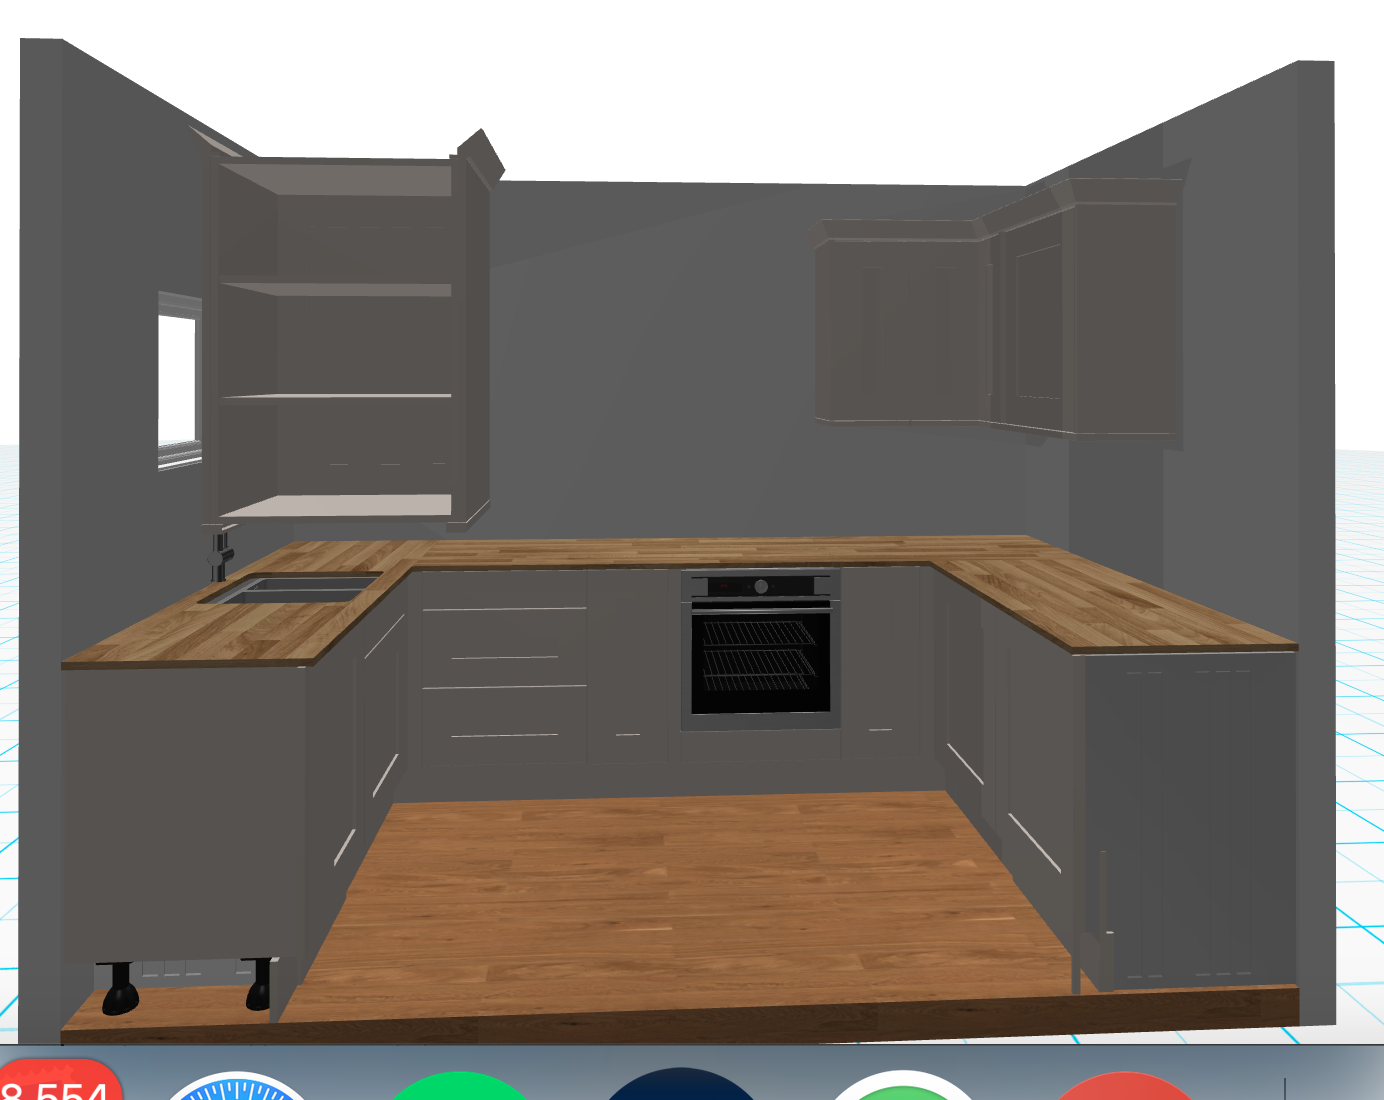 DIY Kitchens: My thoughts so far…